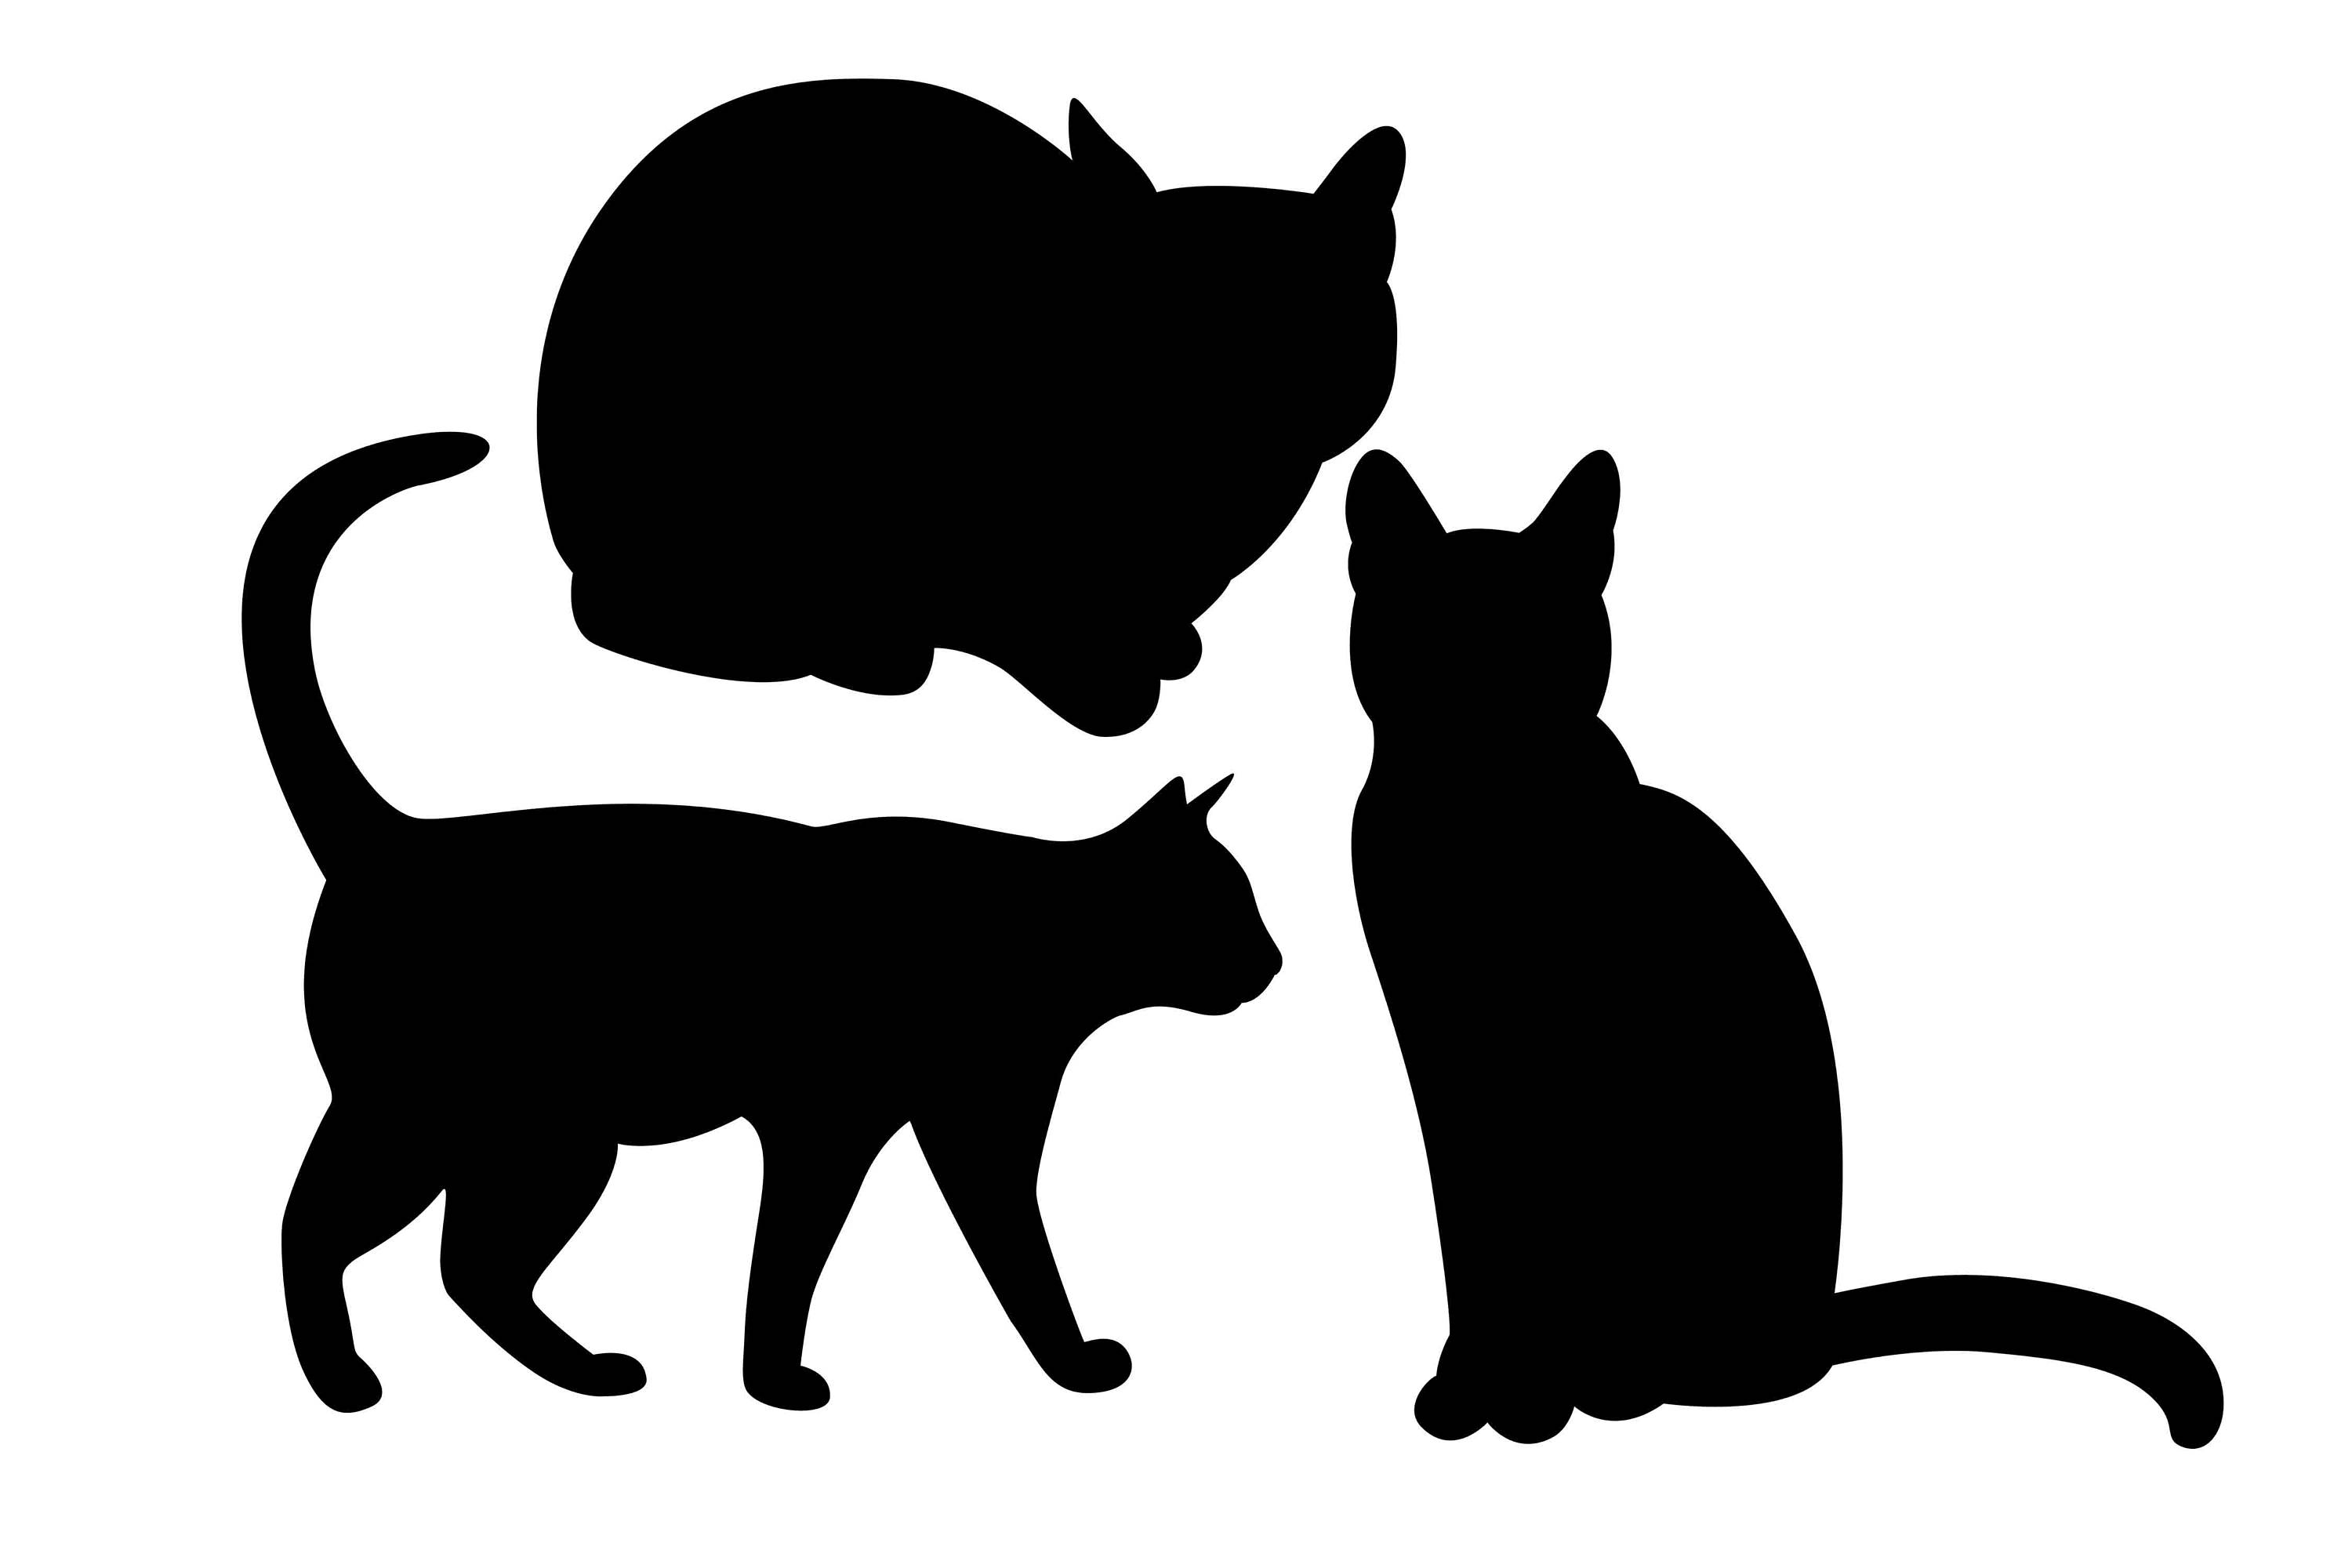 cat silhouette clip art at getdrawings com free for personal use rh getdrawings com  kitty cat clipart